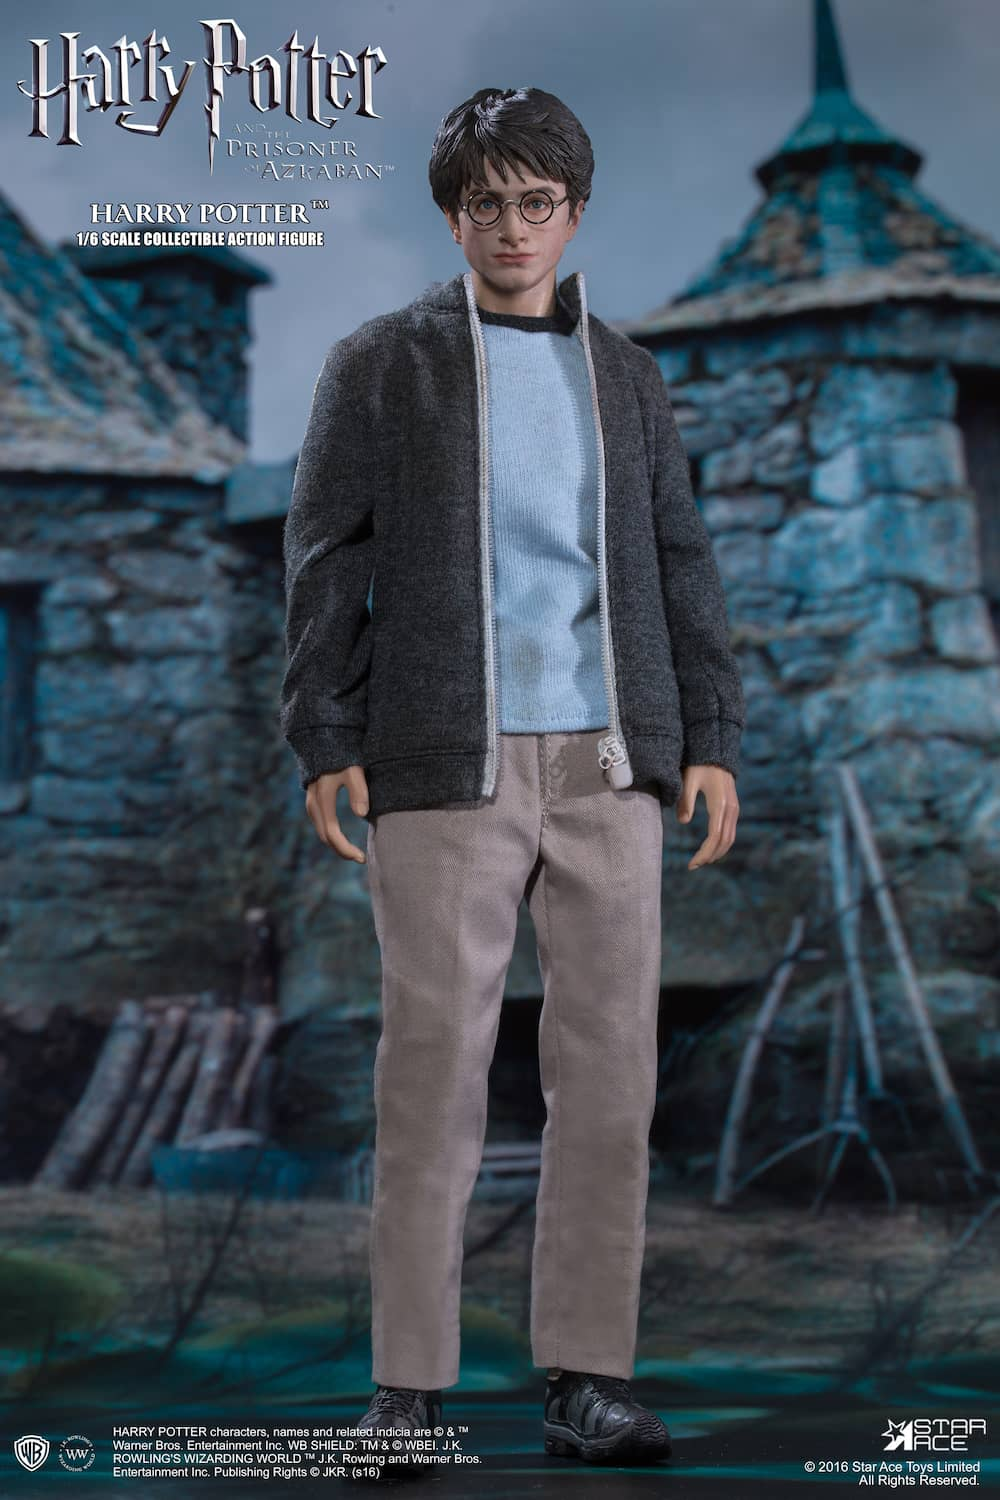 HARRY POTTER VERSION ADOLESCENTE FIGURA 29 CM HARRY POTTER STAR ACE